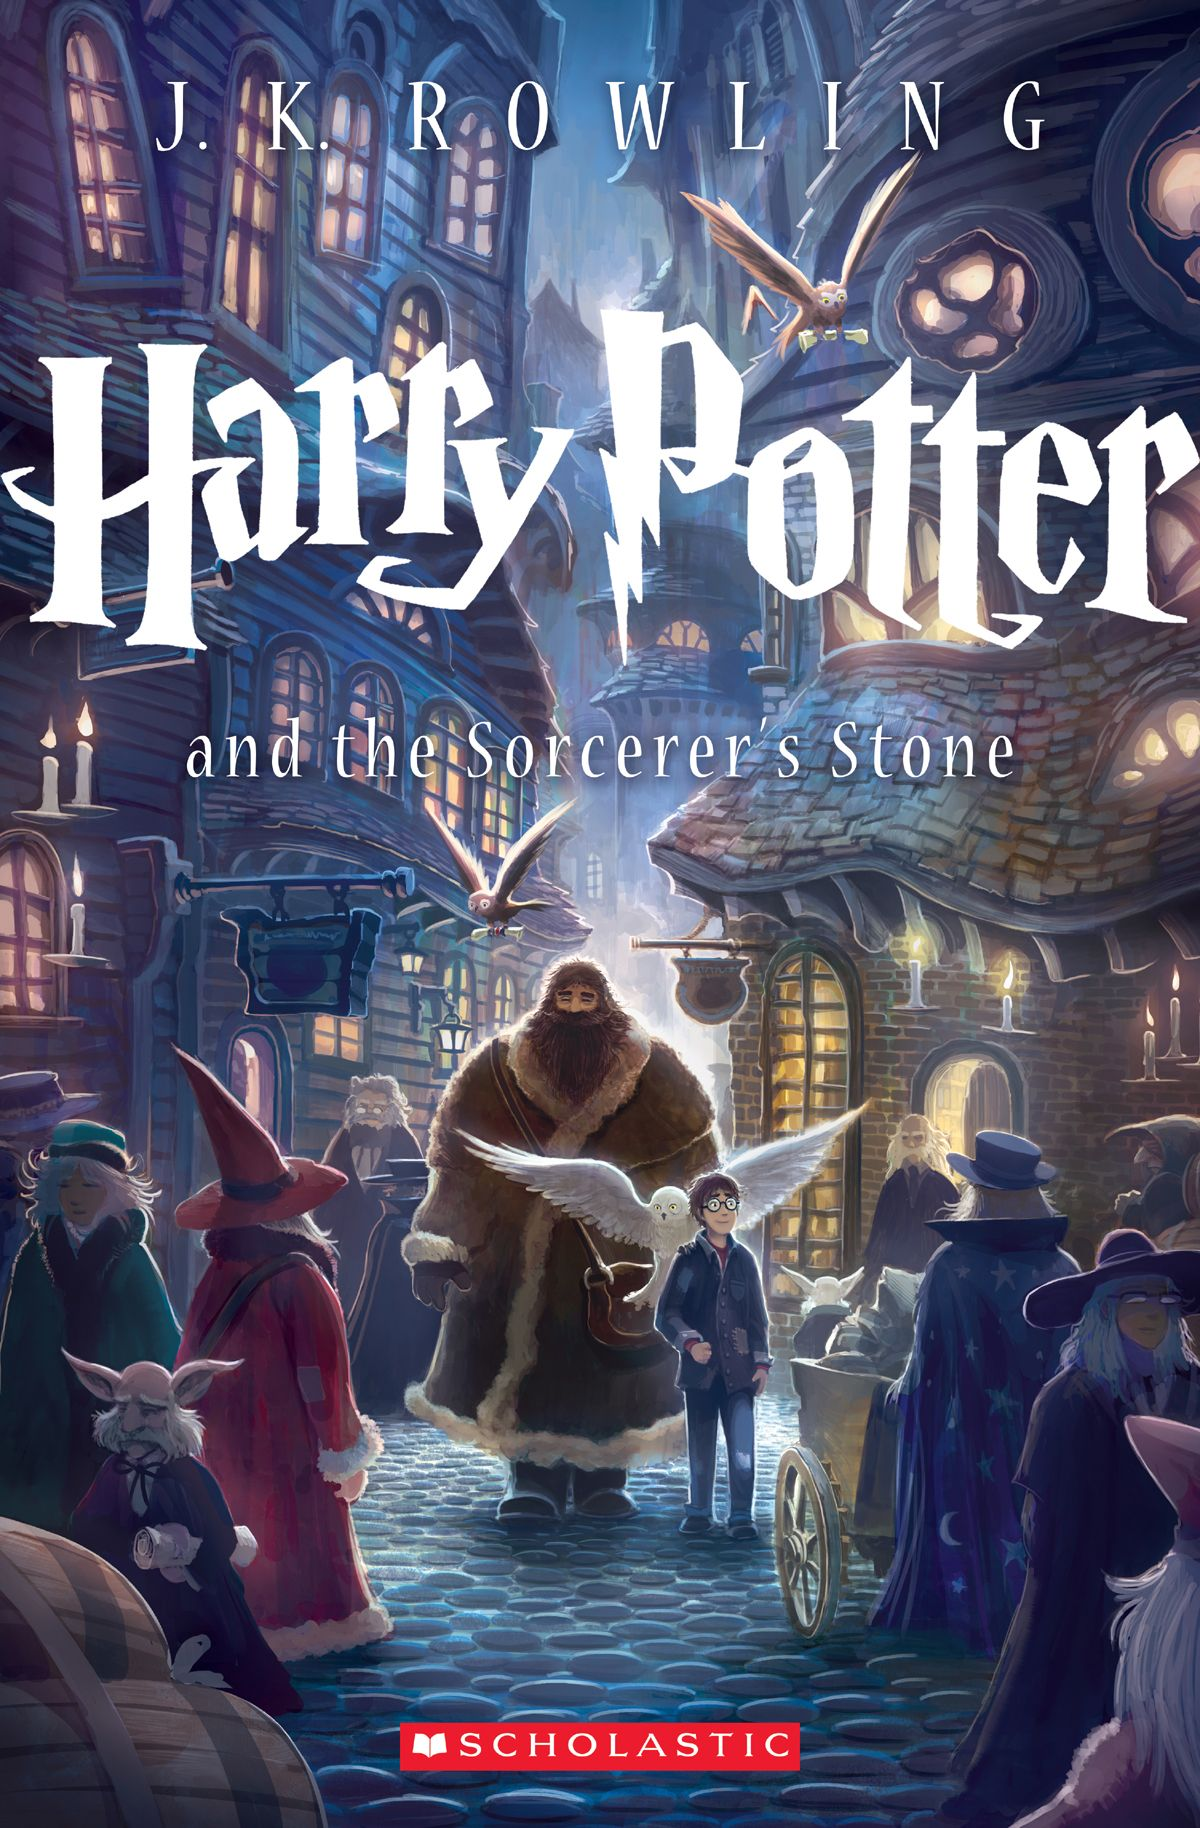 Harry potter and the sorcerers stone 15th anniversary